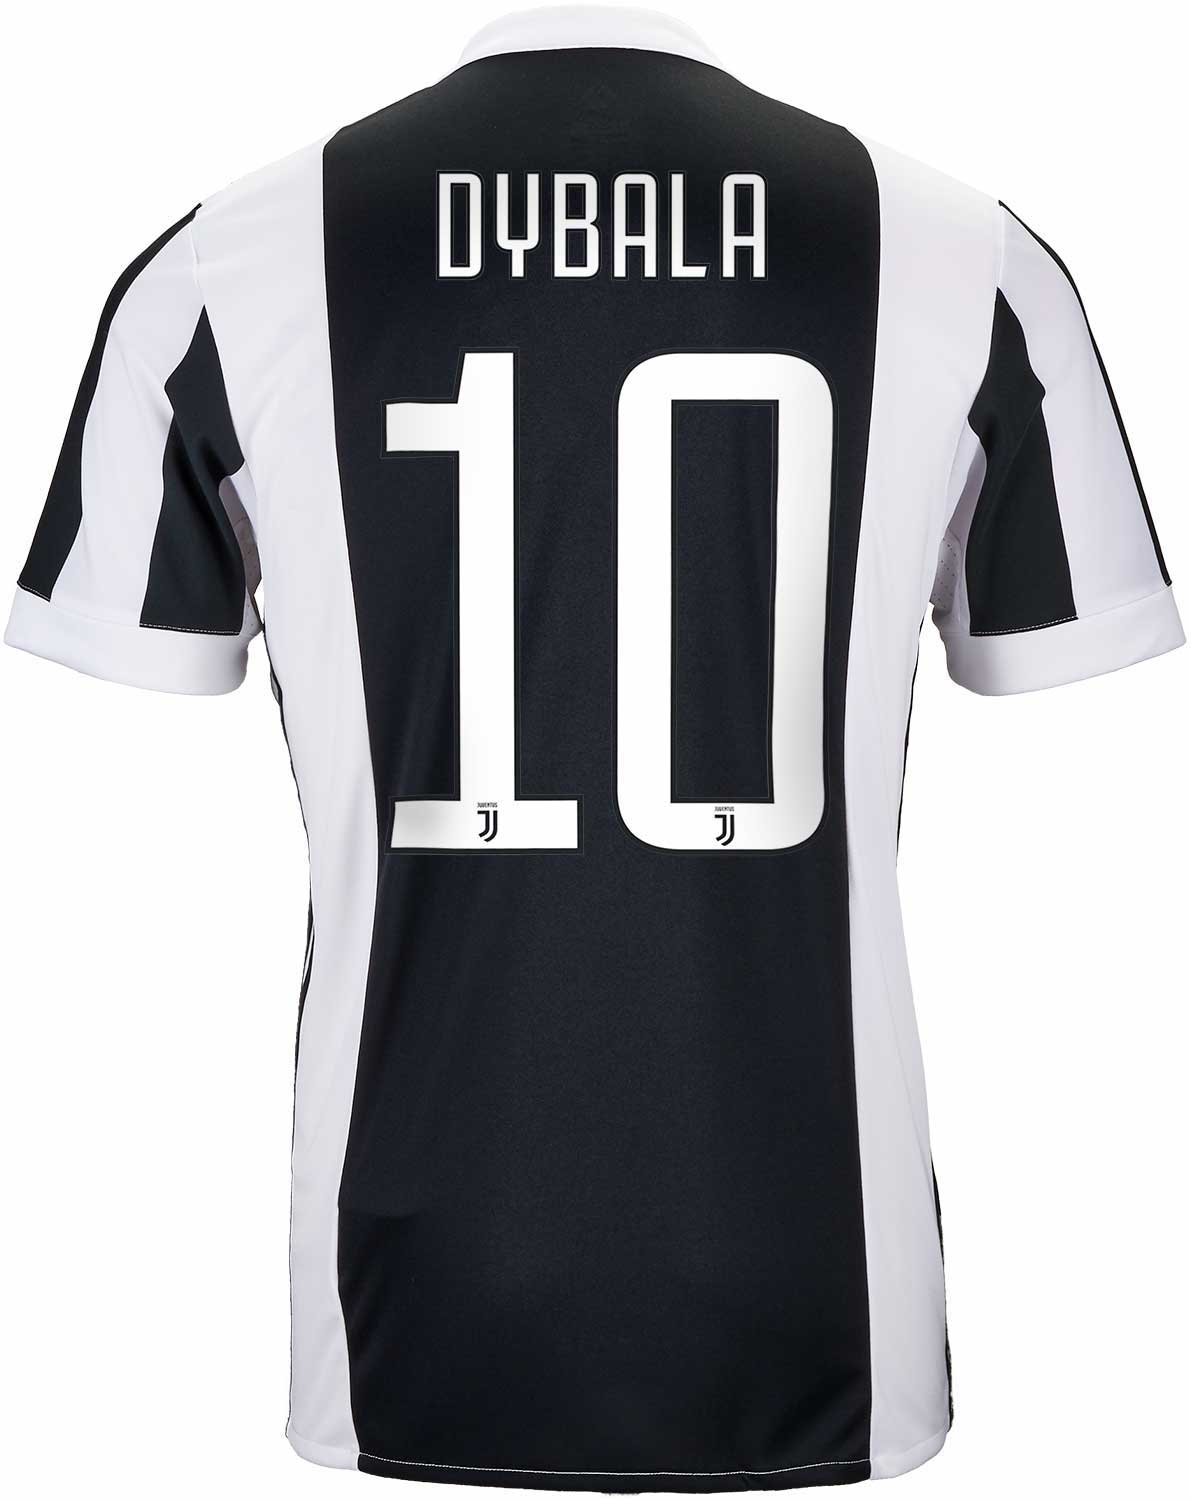 c674fe4b1 best authentic paulo dybala juventus fc youth jersey 10 dark carbon third 18  19 017e0 3337a  coupon code for 2017 18 adidas paulo dybala juventus home  ...